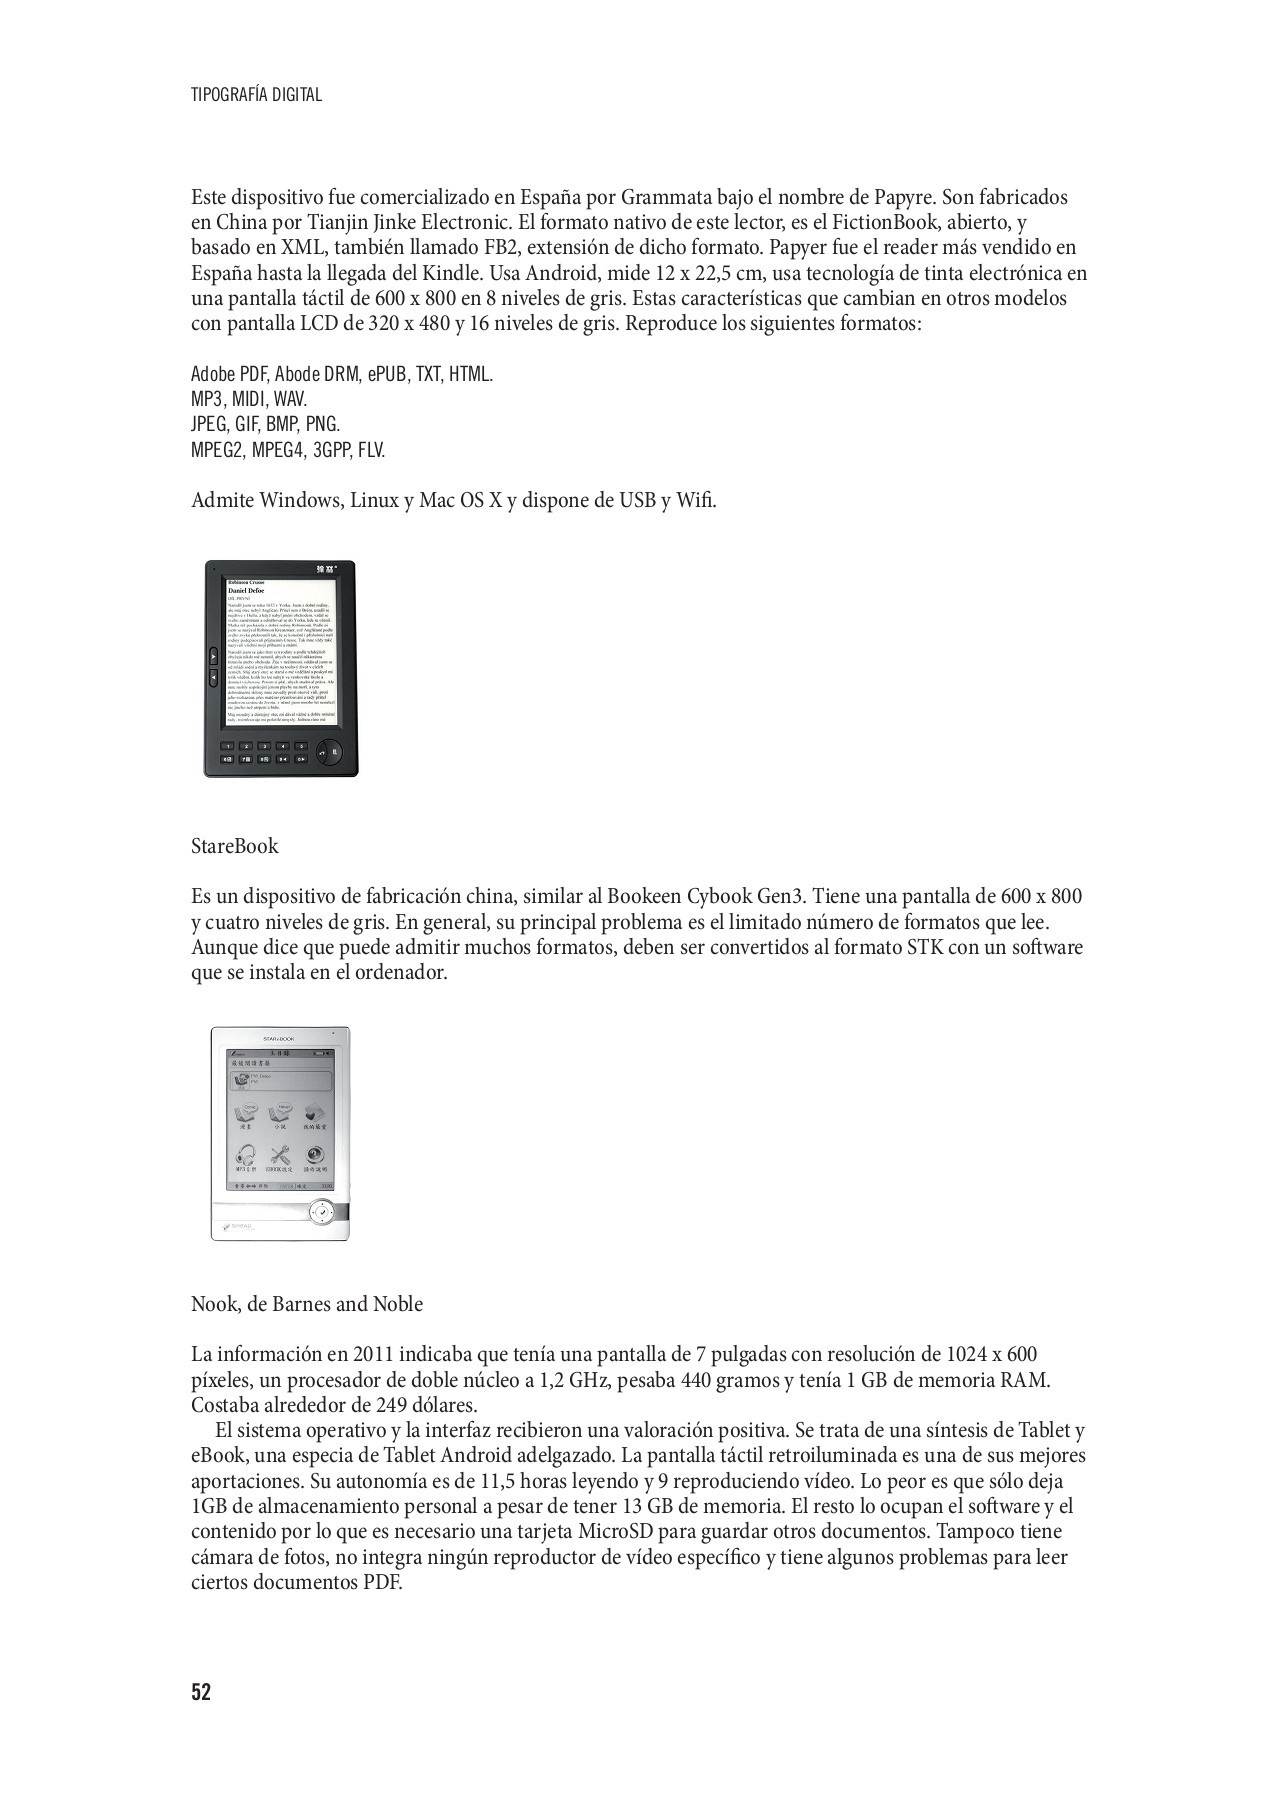 Descargar Libros Fb2 Papyre Digital Pages 51 76 Text Version Pubhtml5